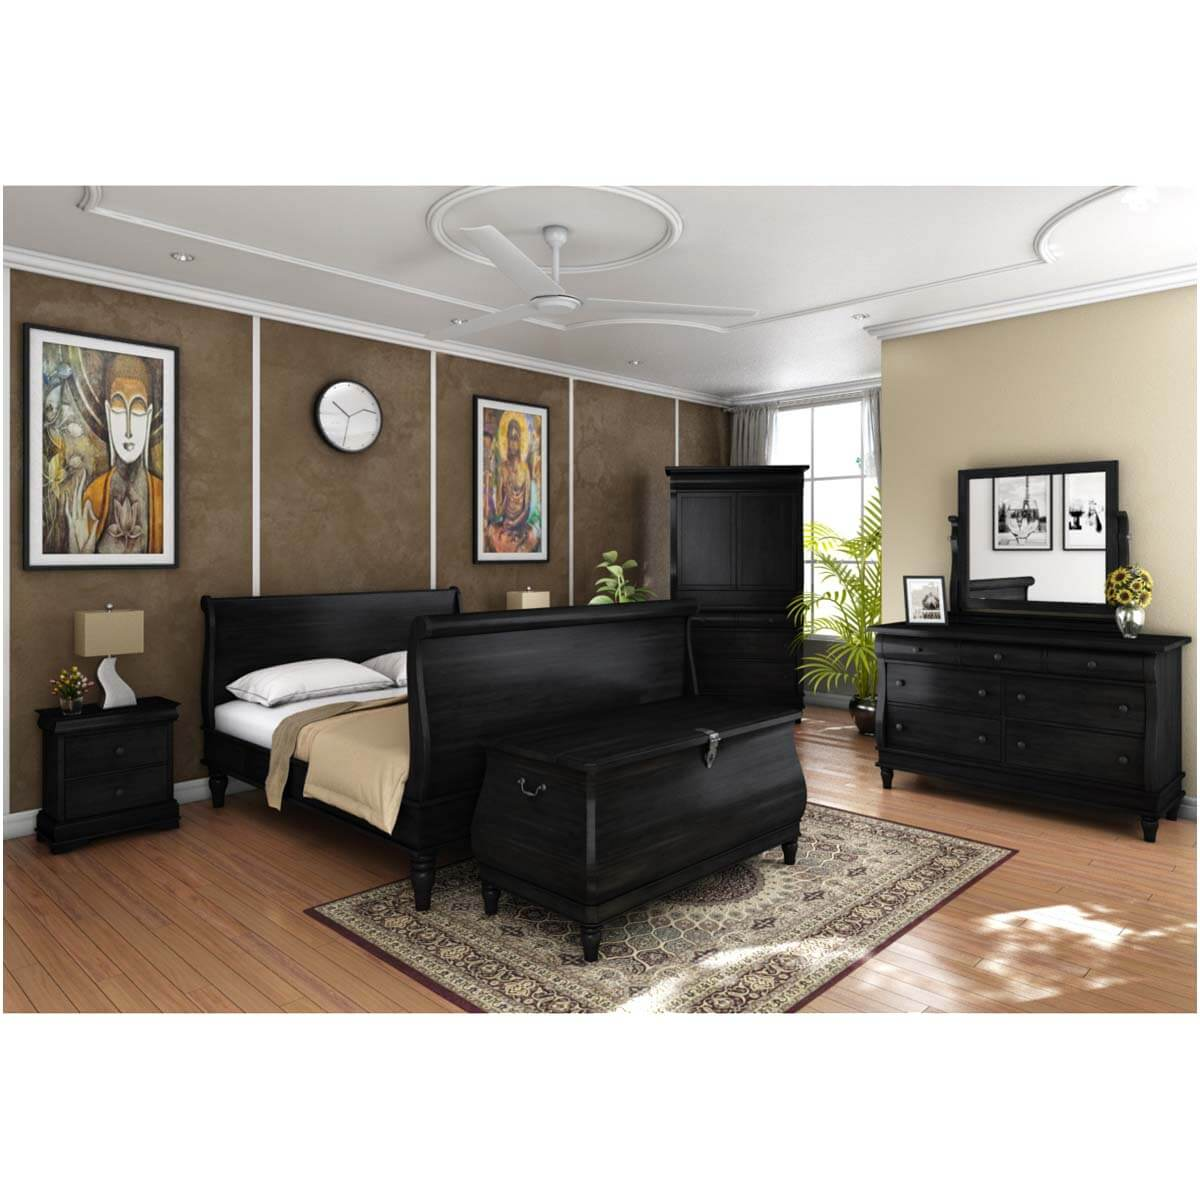 Midnight Empire Solid Wood Sleigh Bed 7pc Bedroom Furniture Set